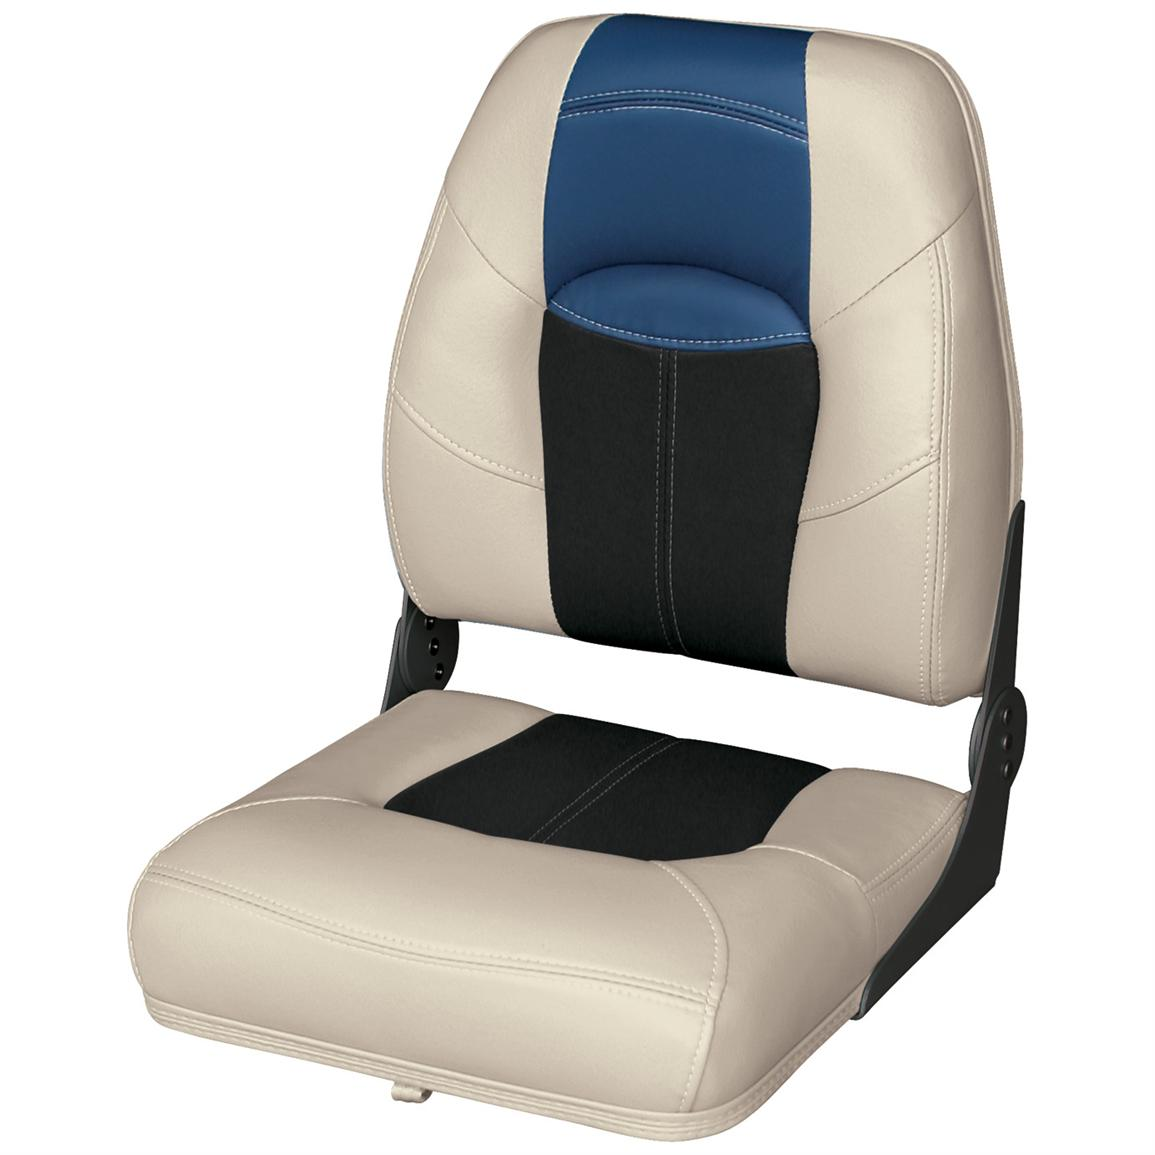 Wise® Blast-Off™ Series High Back Folding Boat Seat, Mushroom / Black / Blue